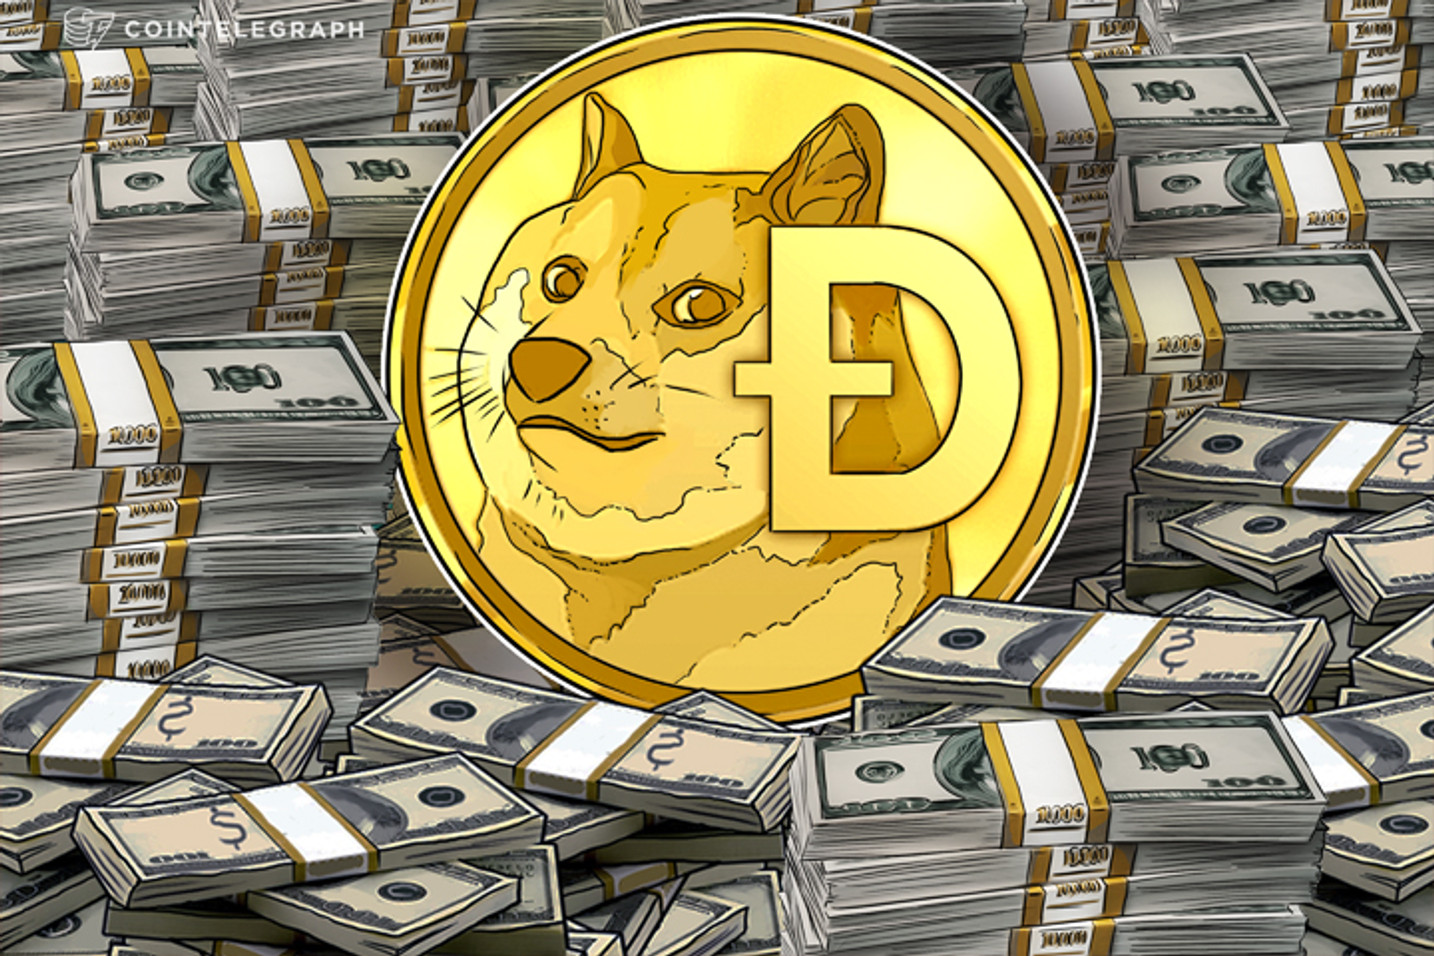 From Memecoin to Billion Dollar Player - Dogecoin Breaks $1 Bln